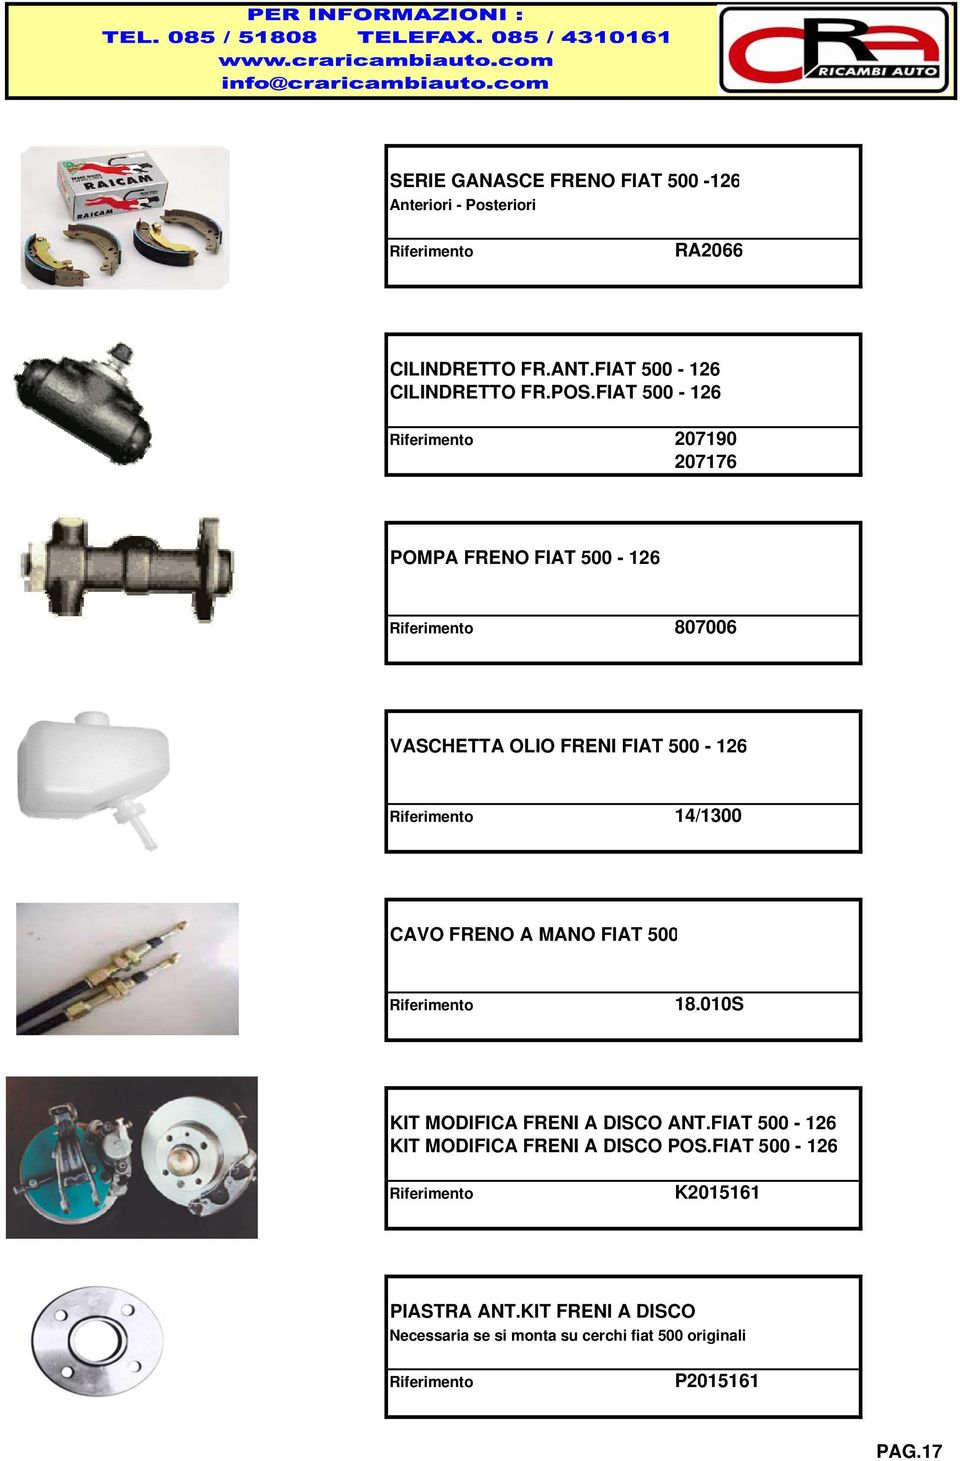 FRENO A MANO FIAT 500 18.010S KIT MODIFICA FRENI A DISCO ANT.FIAT 500-126 KIT MODIFICA FRENI A DISCO POS.